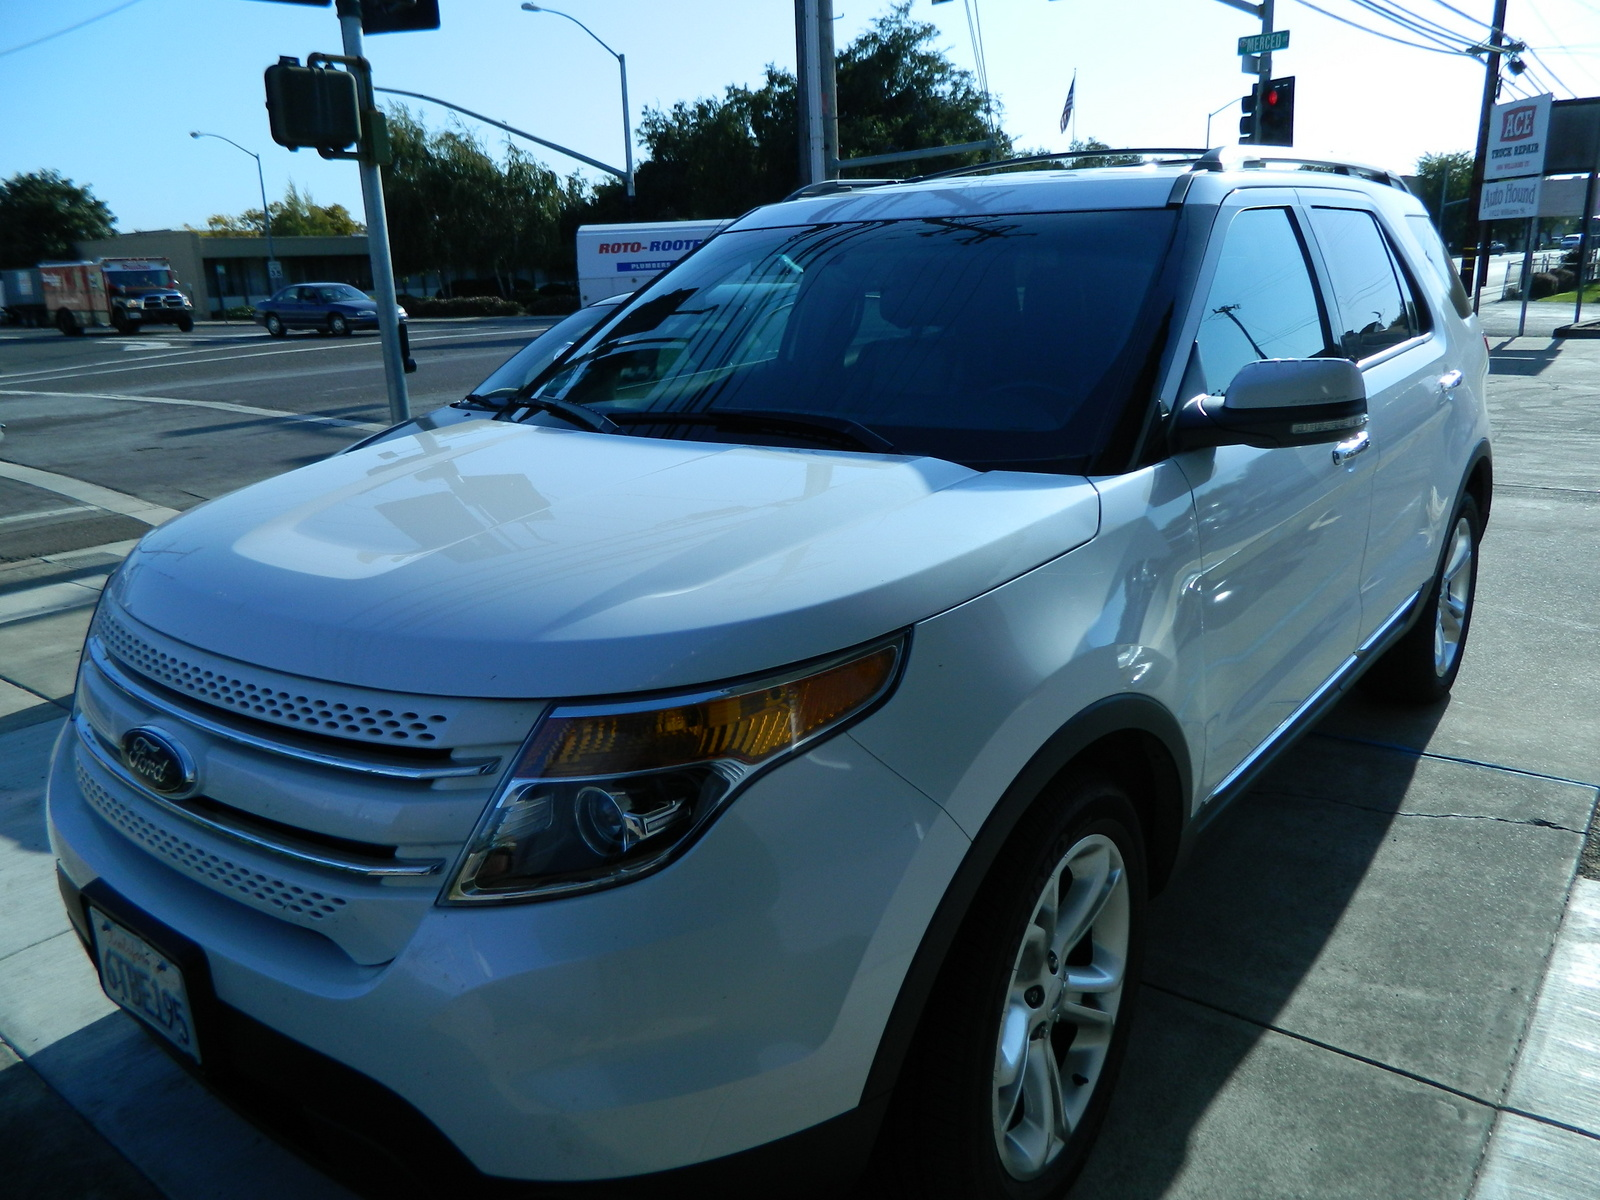 2012 ford explorer for sale in modesto ca cargurus. Cars Review. Best American Auto & Cars Review